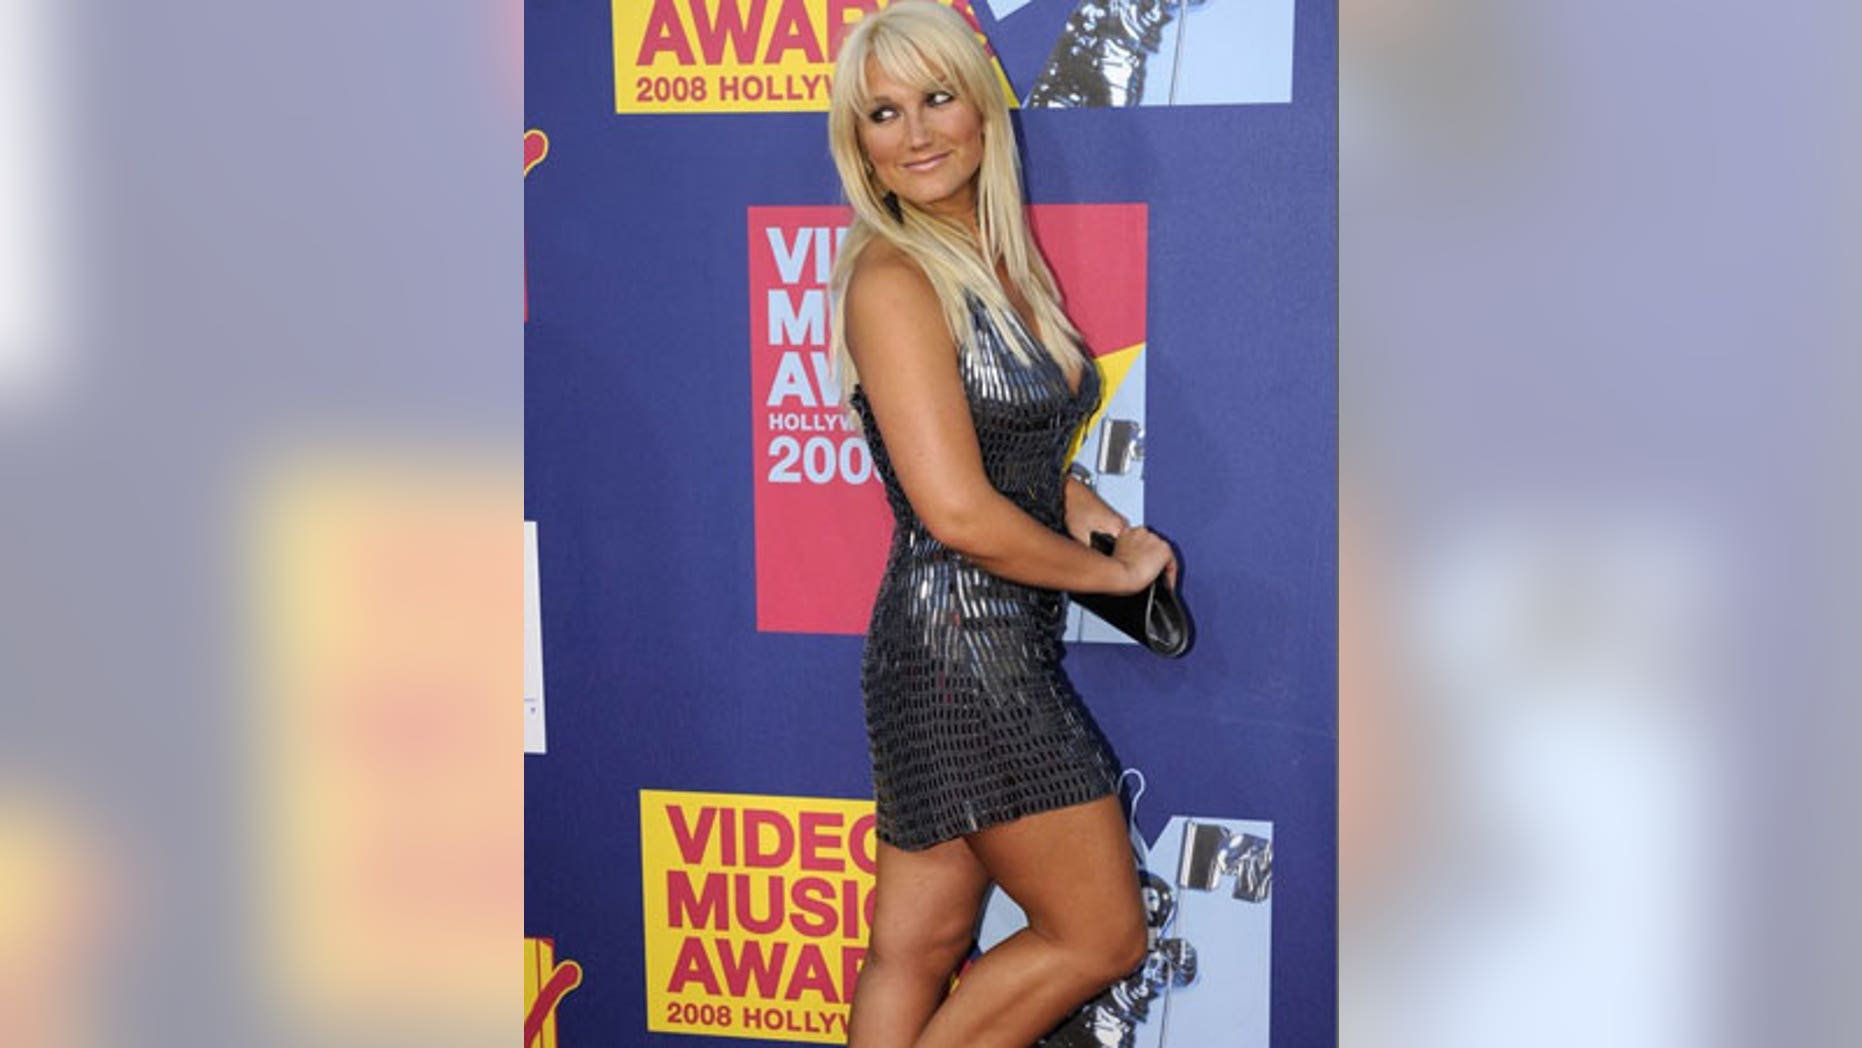 Brooke Hogan says her dad Hulk has been training her since she was 12 years old.